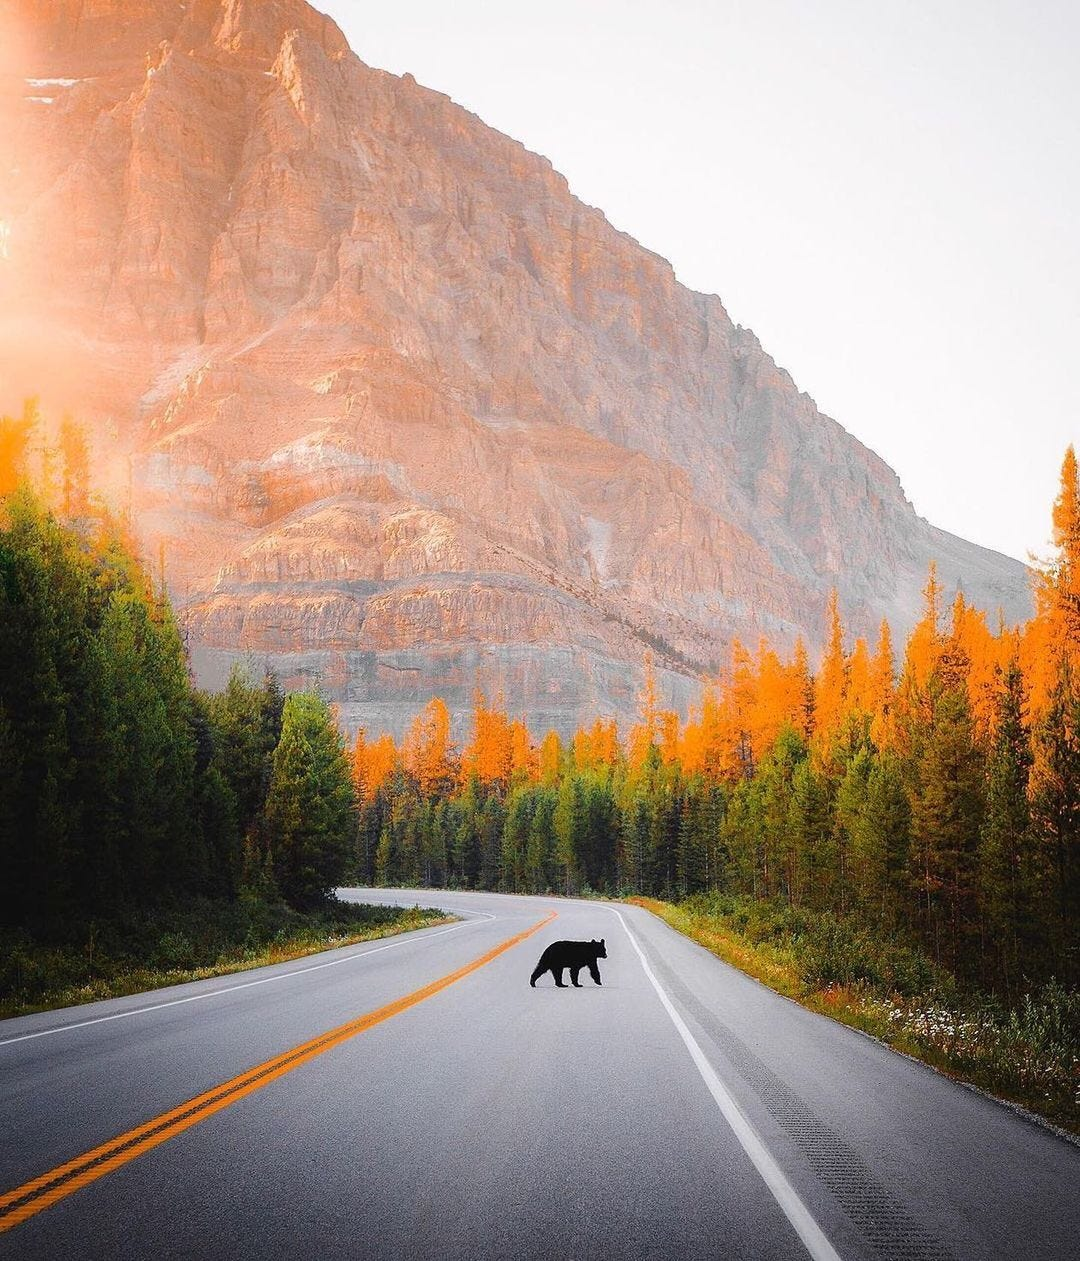 landscape of mountains on bear on road